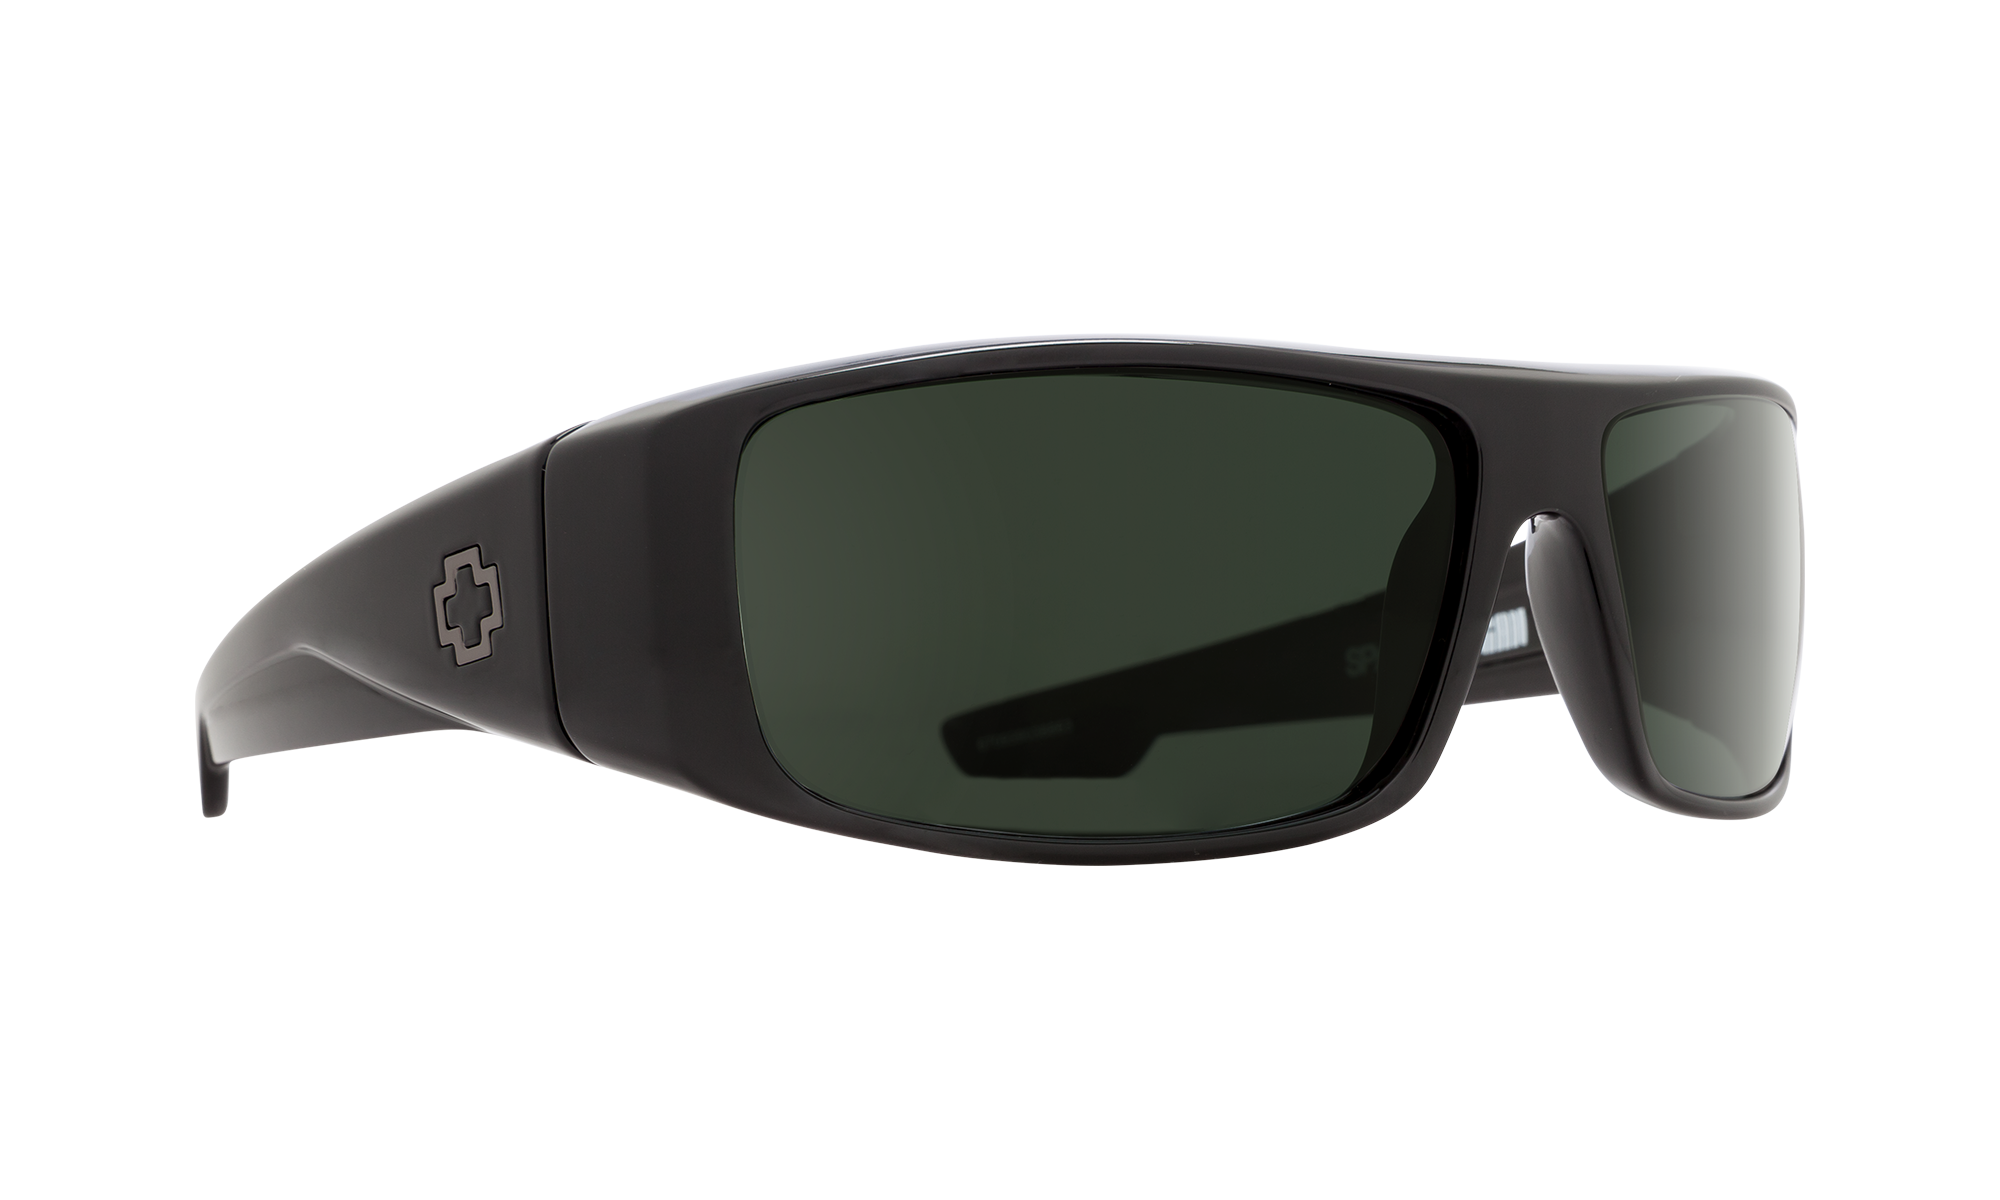 SPY Goggles and Glasses CLOSEOUT